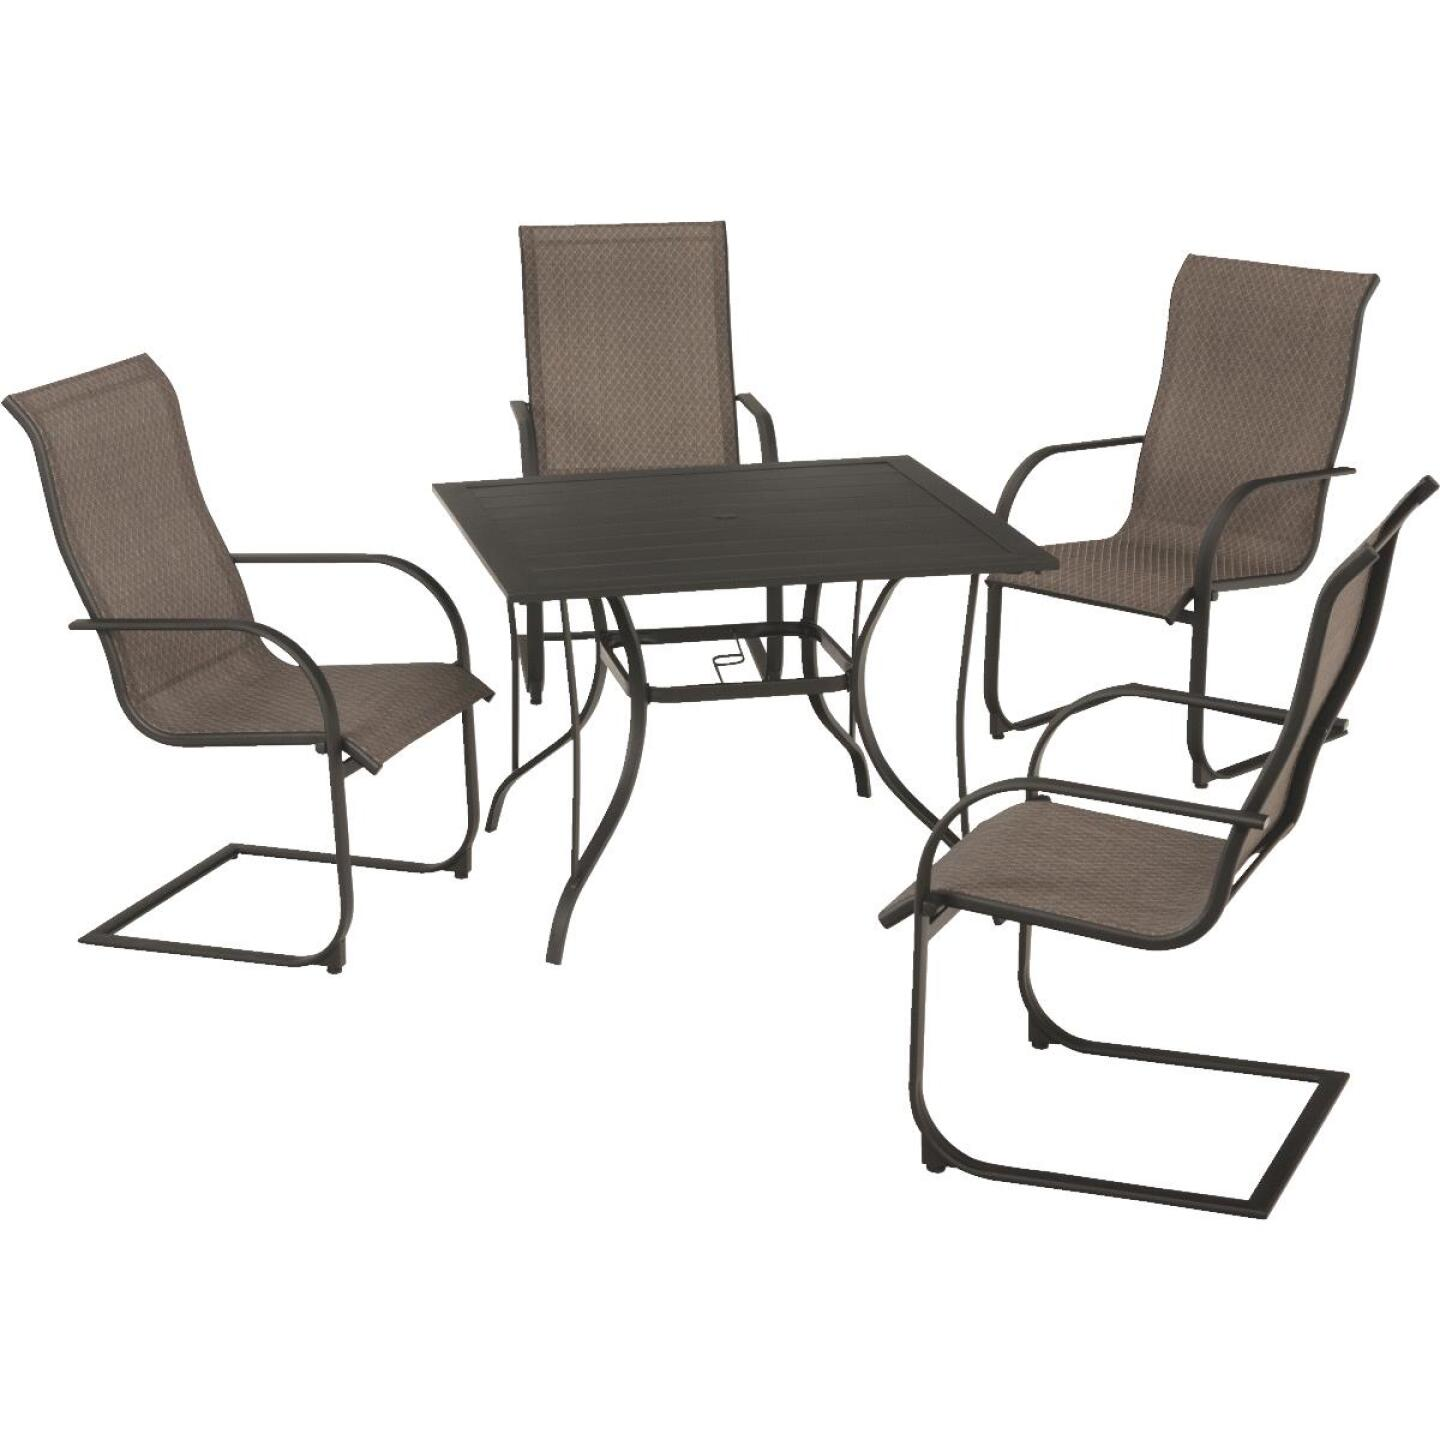 Outdoor Expressions Springfield 5-Piece Spring Chair Dining Set Image 2